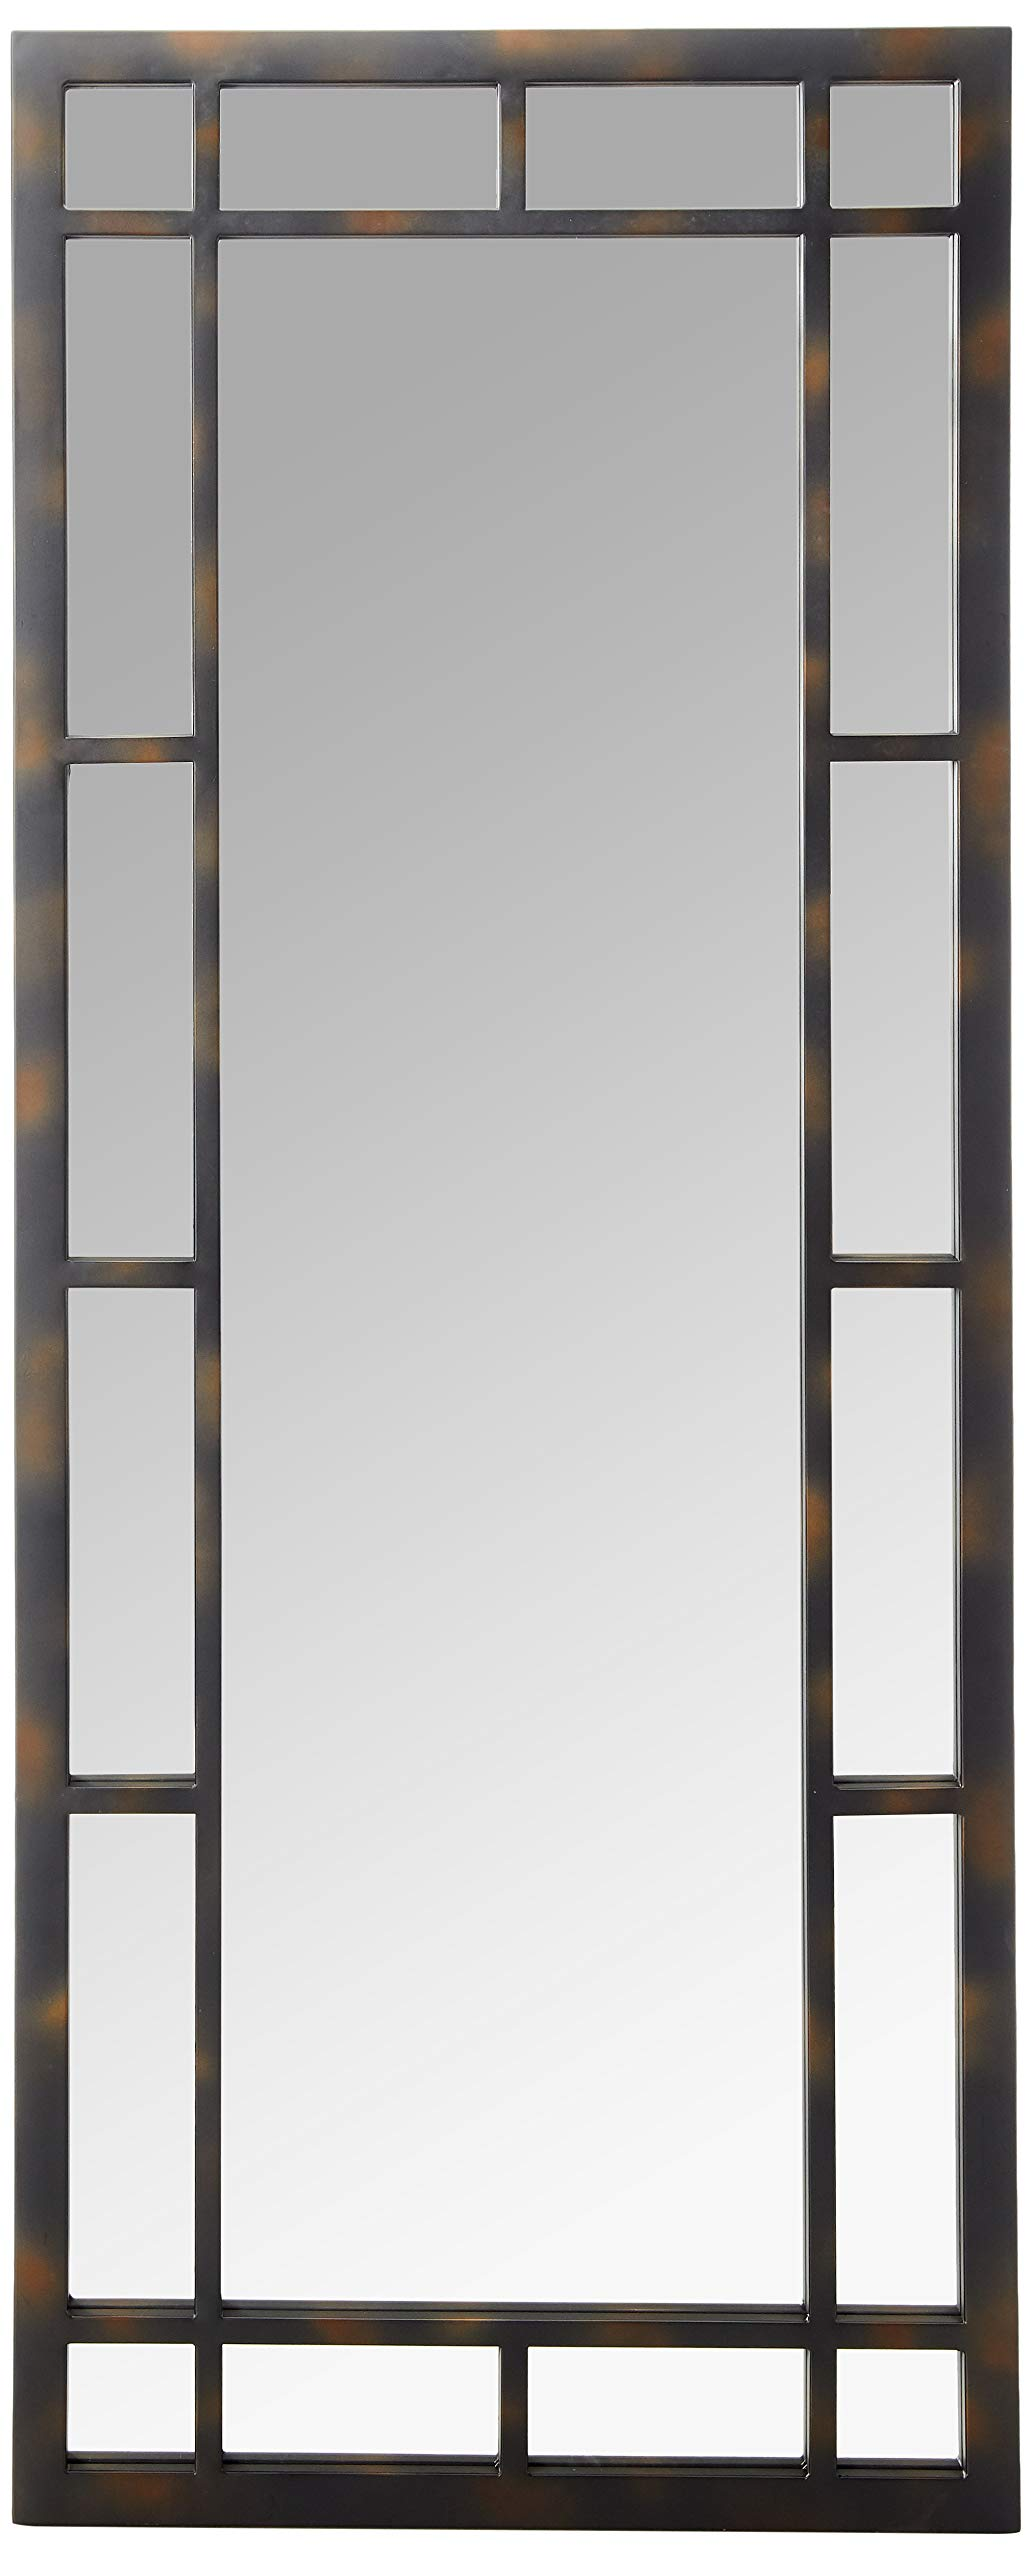 Coaster Home Furnishings Coaster Industrial Geometric Mirror with Black Frame, by Coaster Home Furnishings